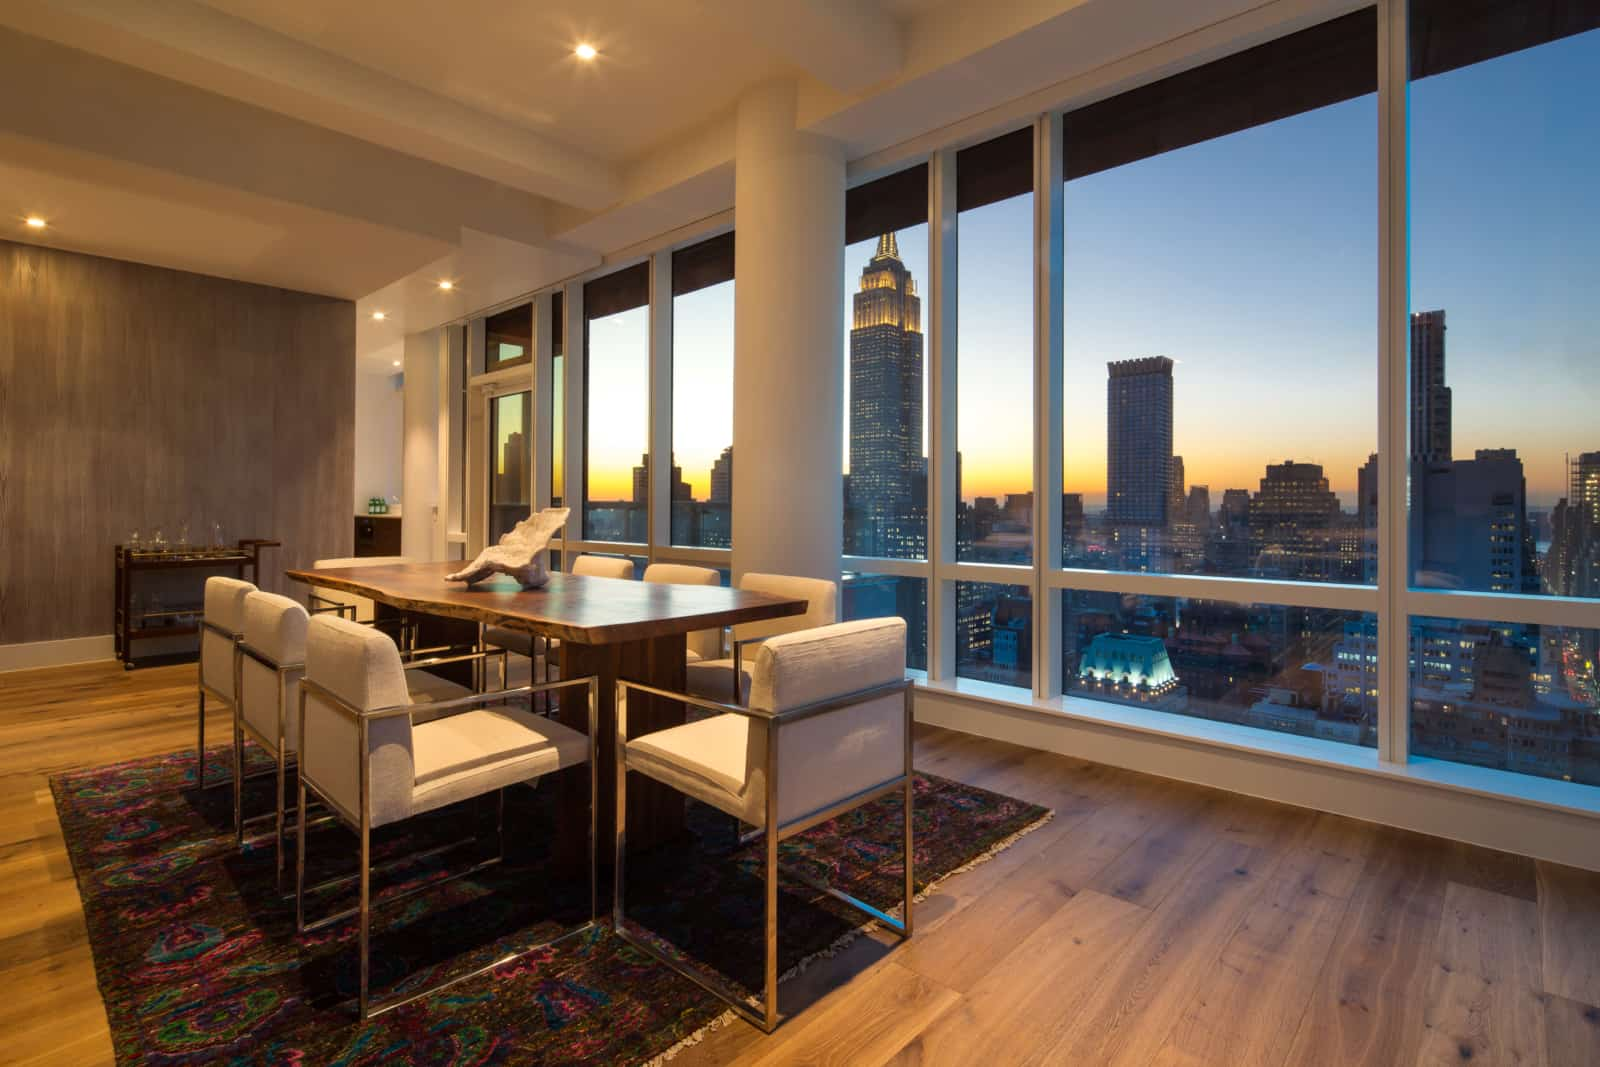 Modern apartment dining room with wall of windows and city views.